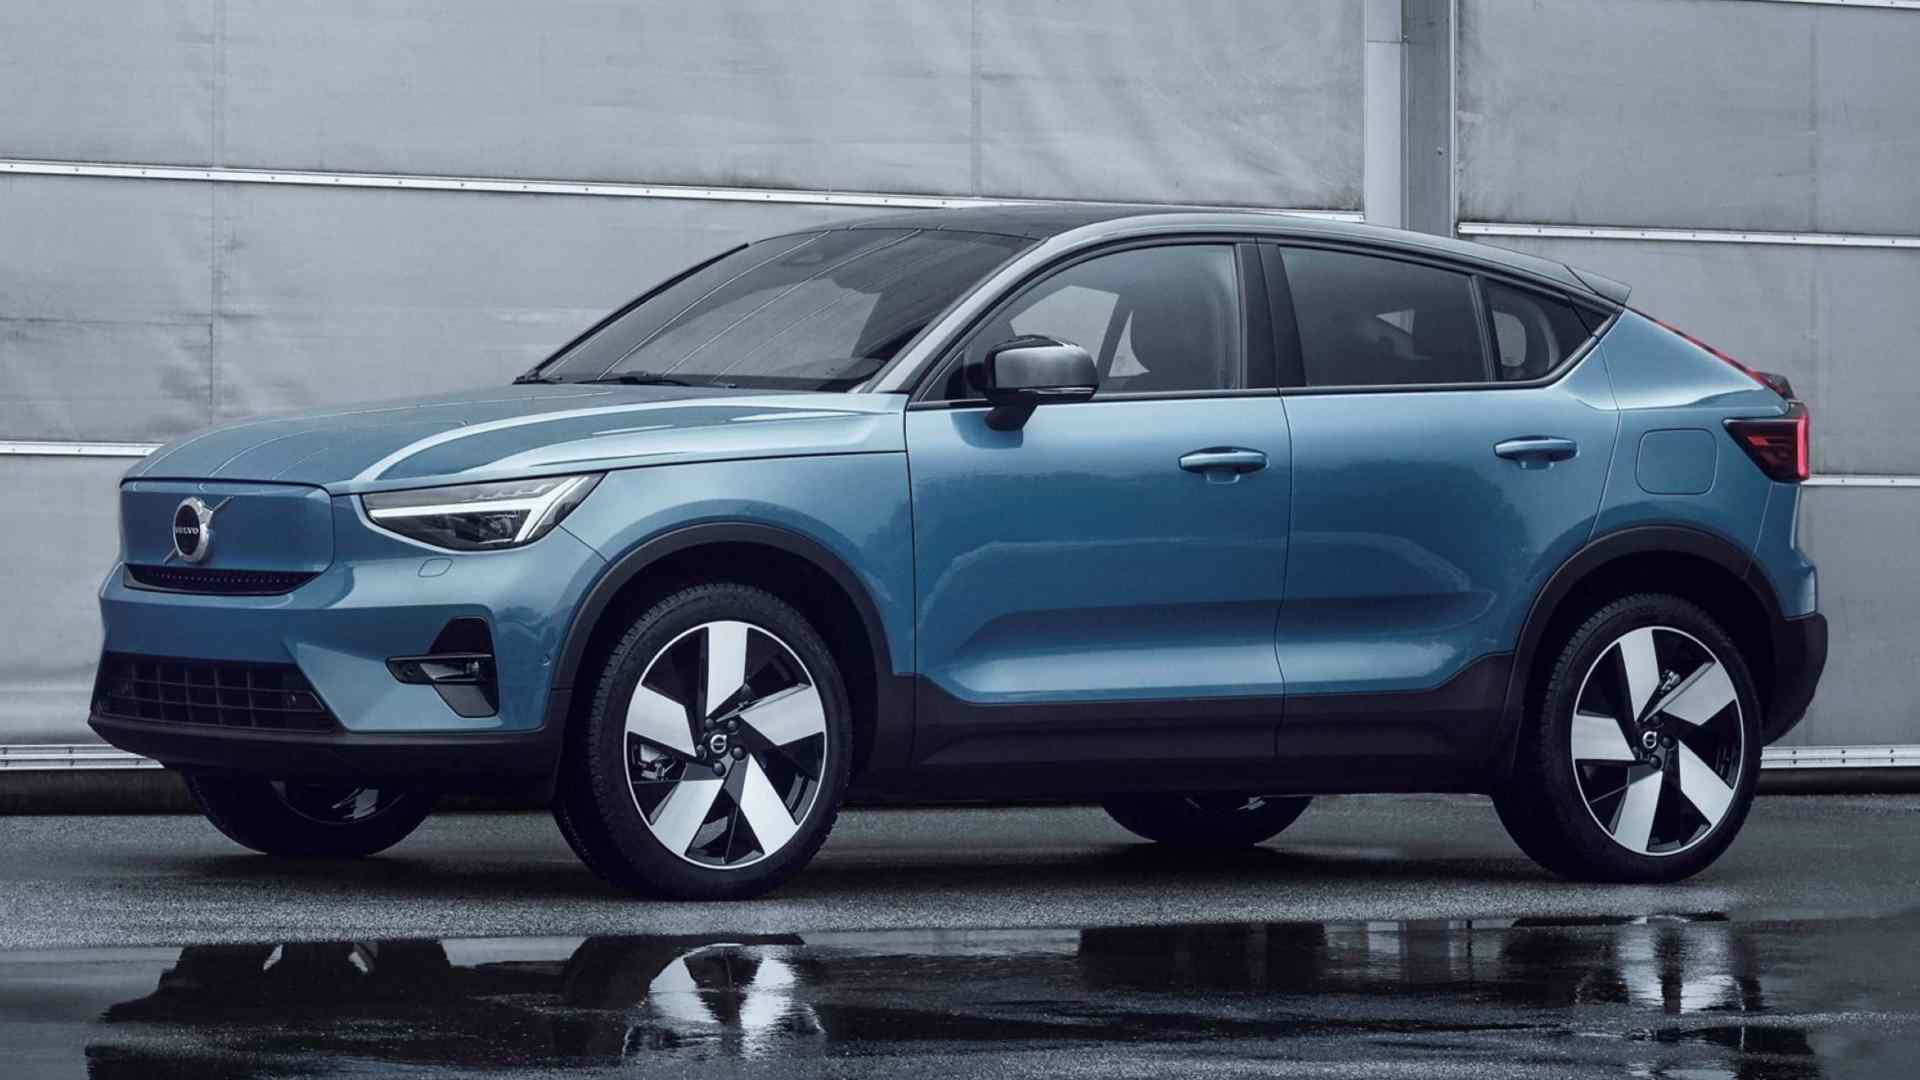 Volvo C40 Recharge debuts, all-electric coupe-SUV has two motors, 408hp and 420km range